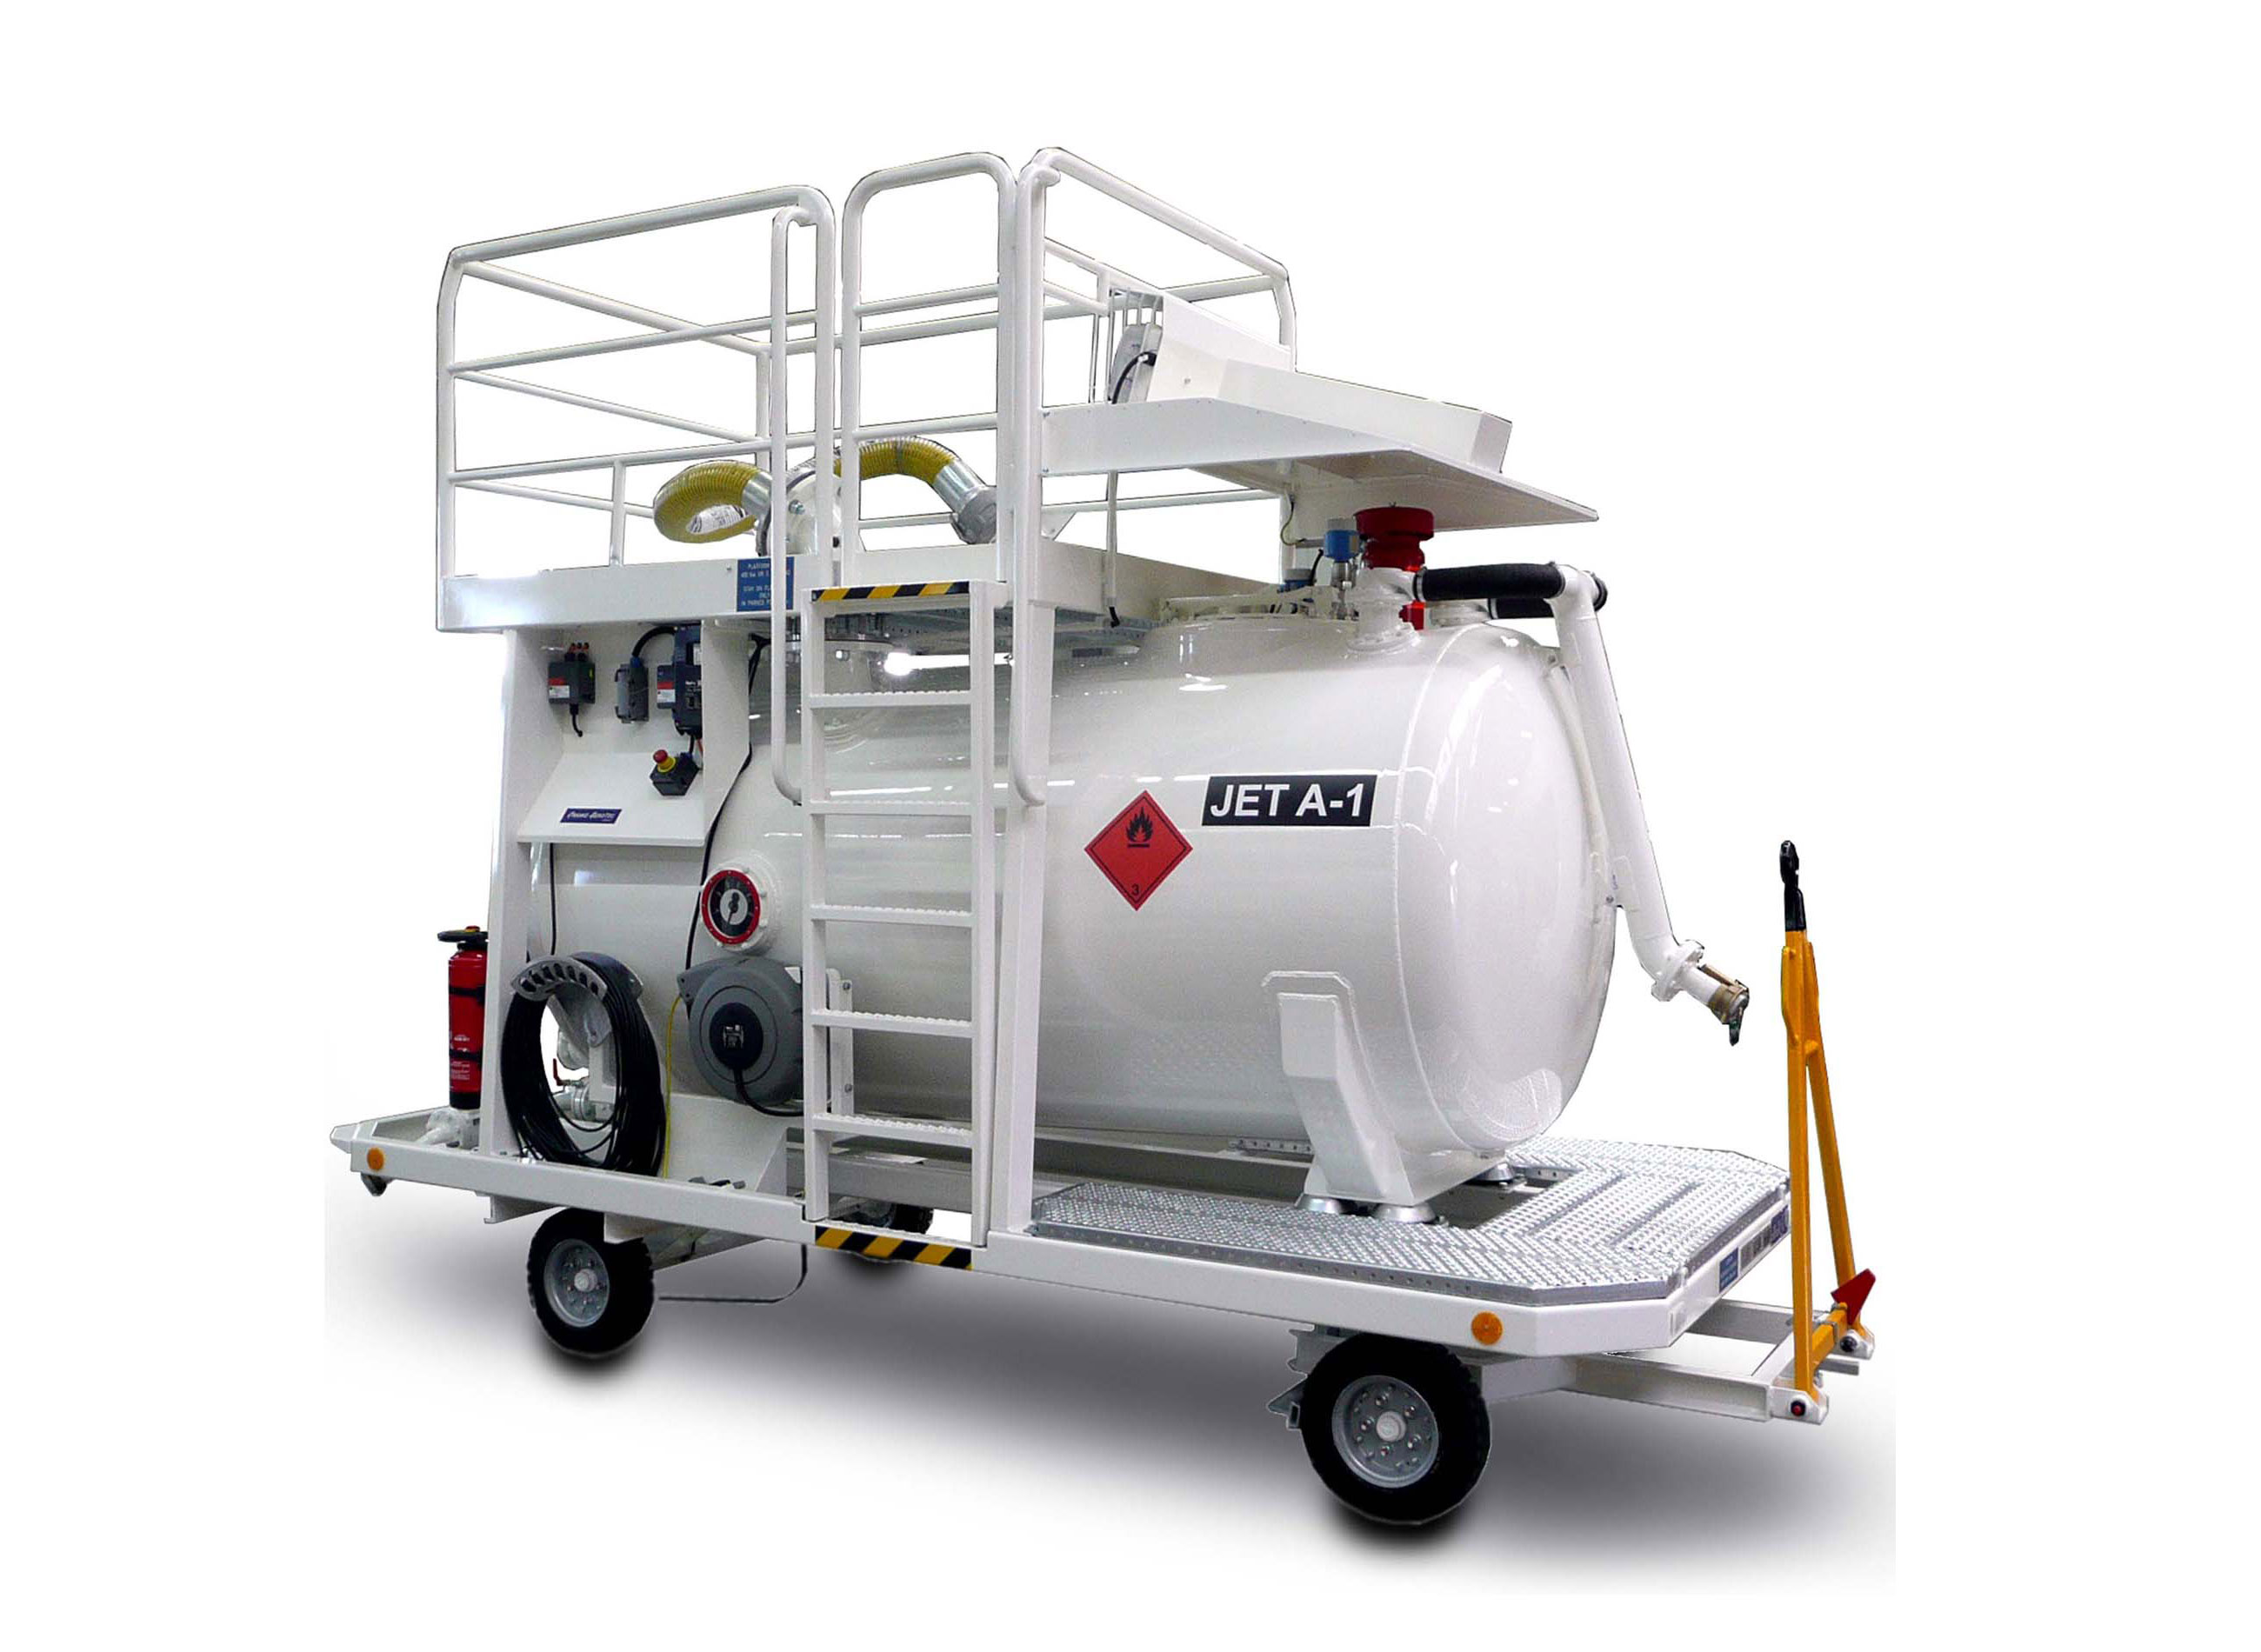 Service Carts and Devices for Kerosene, Oil, Skydrol and Water. Hydraulic Service Cart, tank emptying, fuel tank ventilation, water disinfection  <a href='pg5_gse-service.html'>...directly to the product page</a>